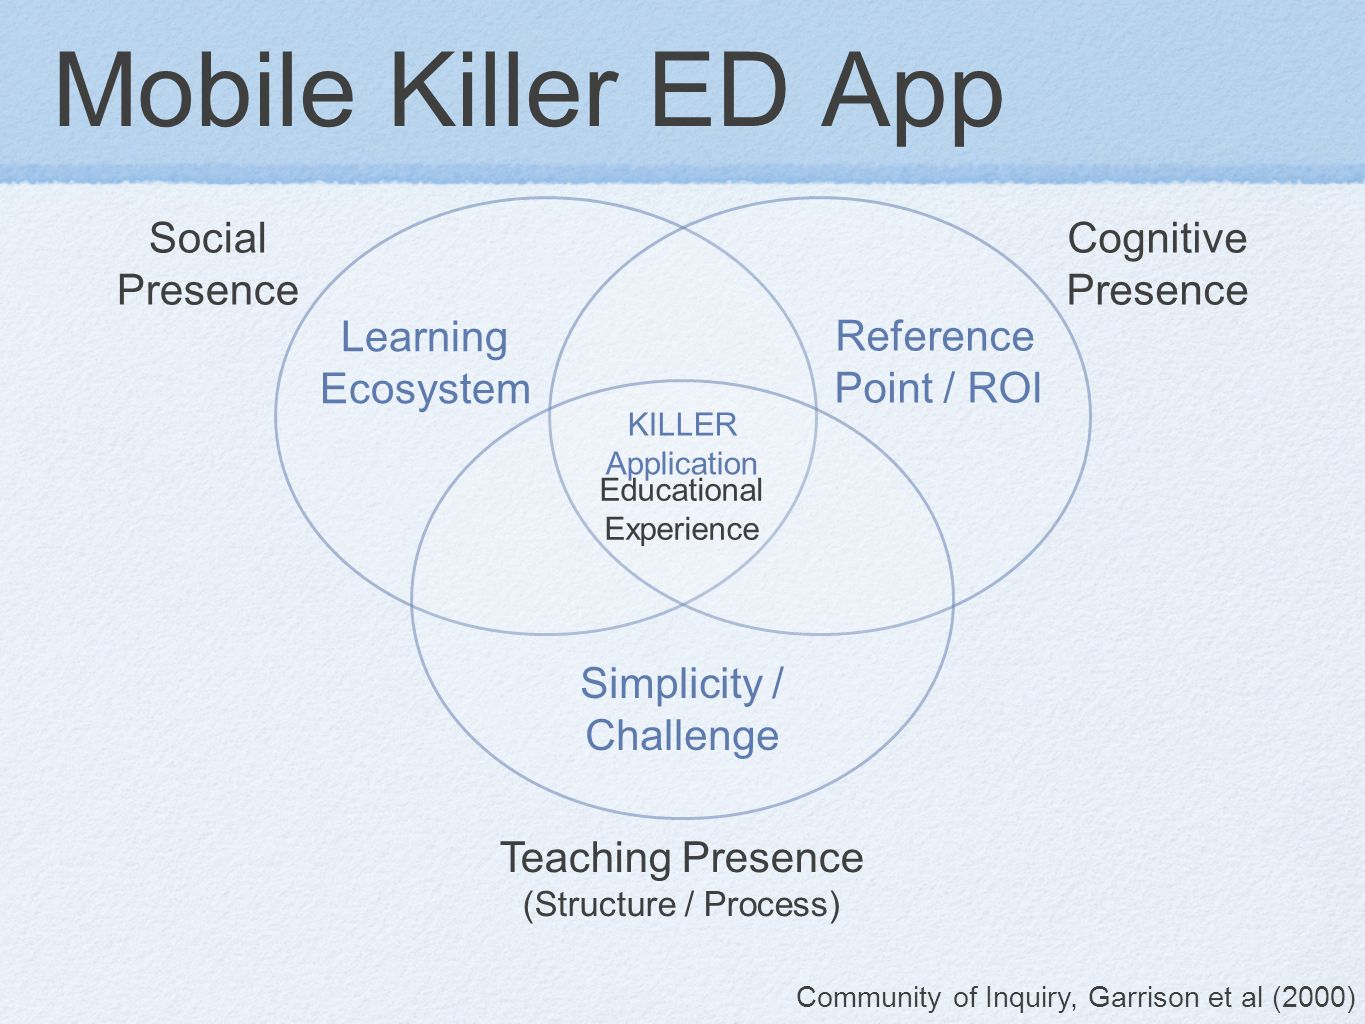 Mobile Killer ED App Reference Point / ROI Learning Ecosystem Simplicity / Challenge KILLER Application Social Presence Cognitive Presence Teaching Presence (Structure / Process) Educational Experience Community of Inquiry, Garrison et al (2000)